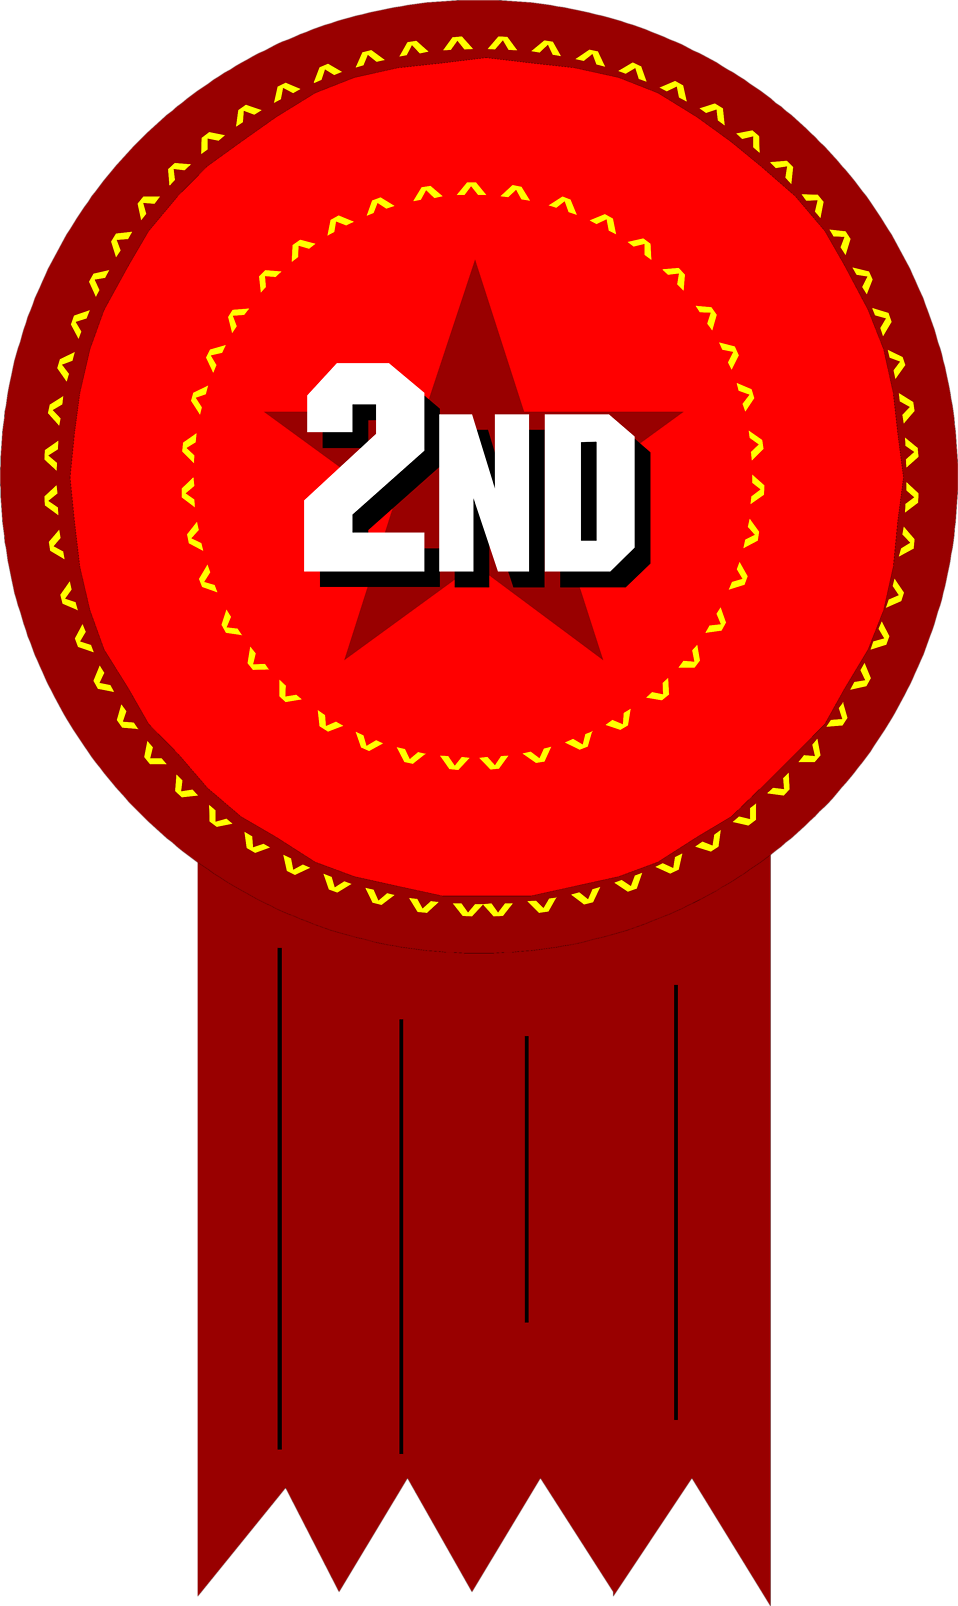 Award   Free Stock Photo   Illustration Of A 2nd Place Ribbon     8249